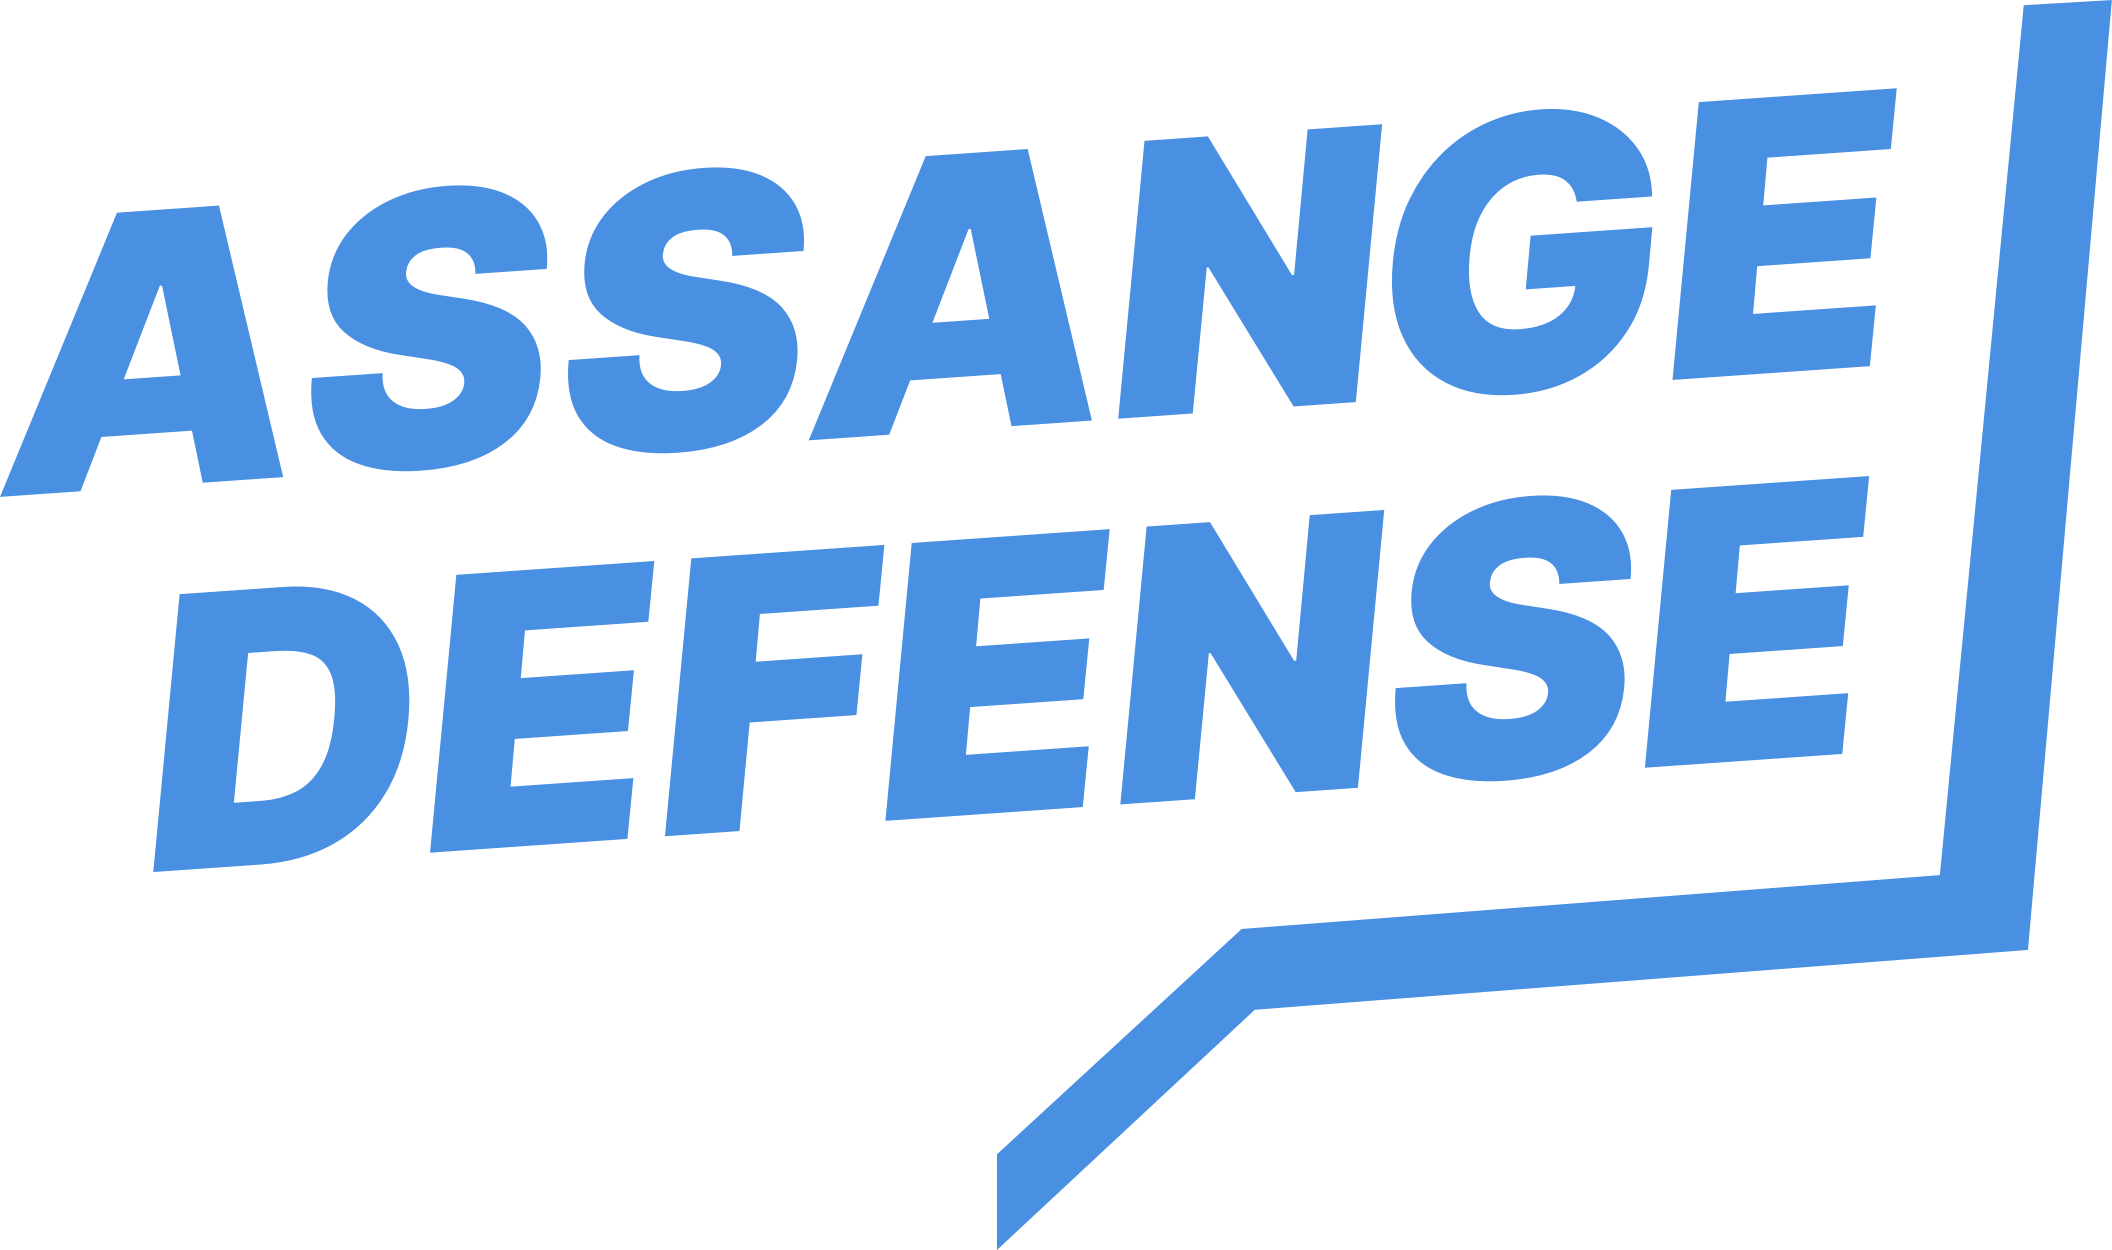 Assange Defense